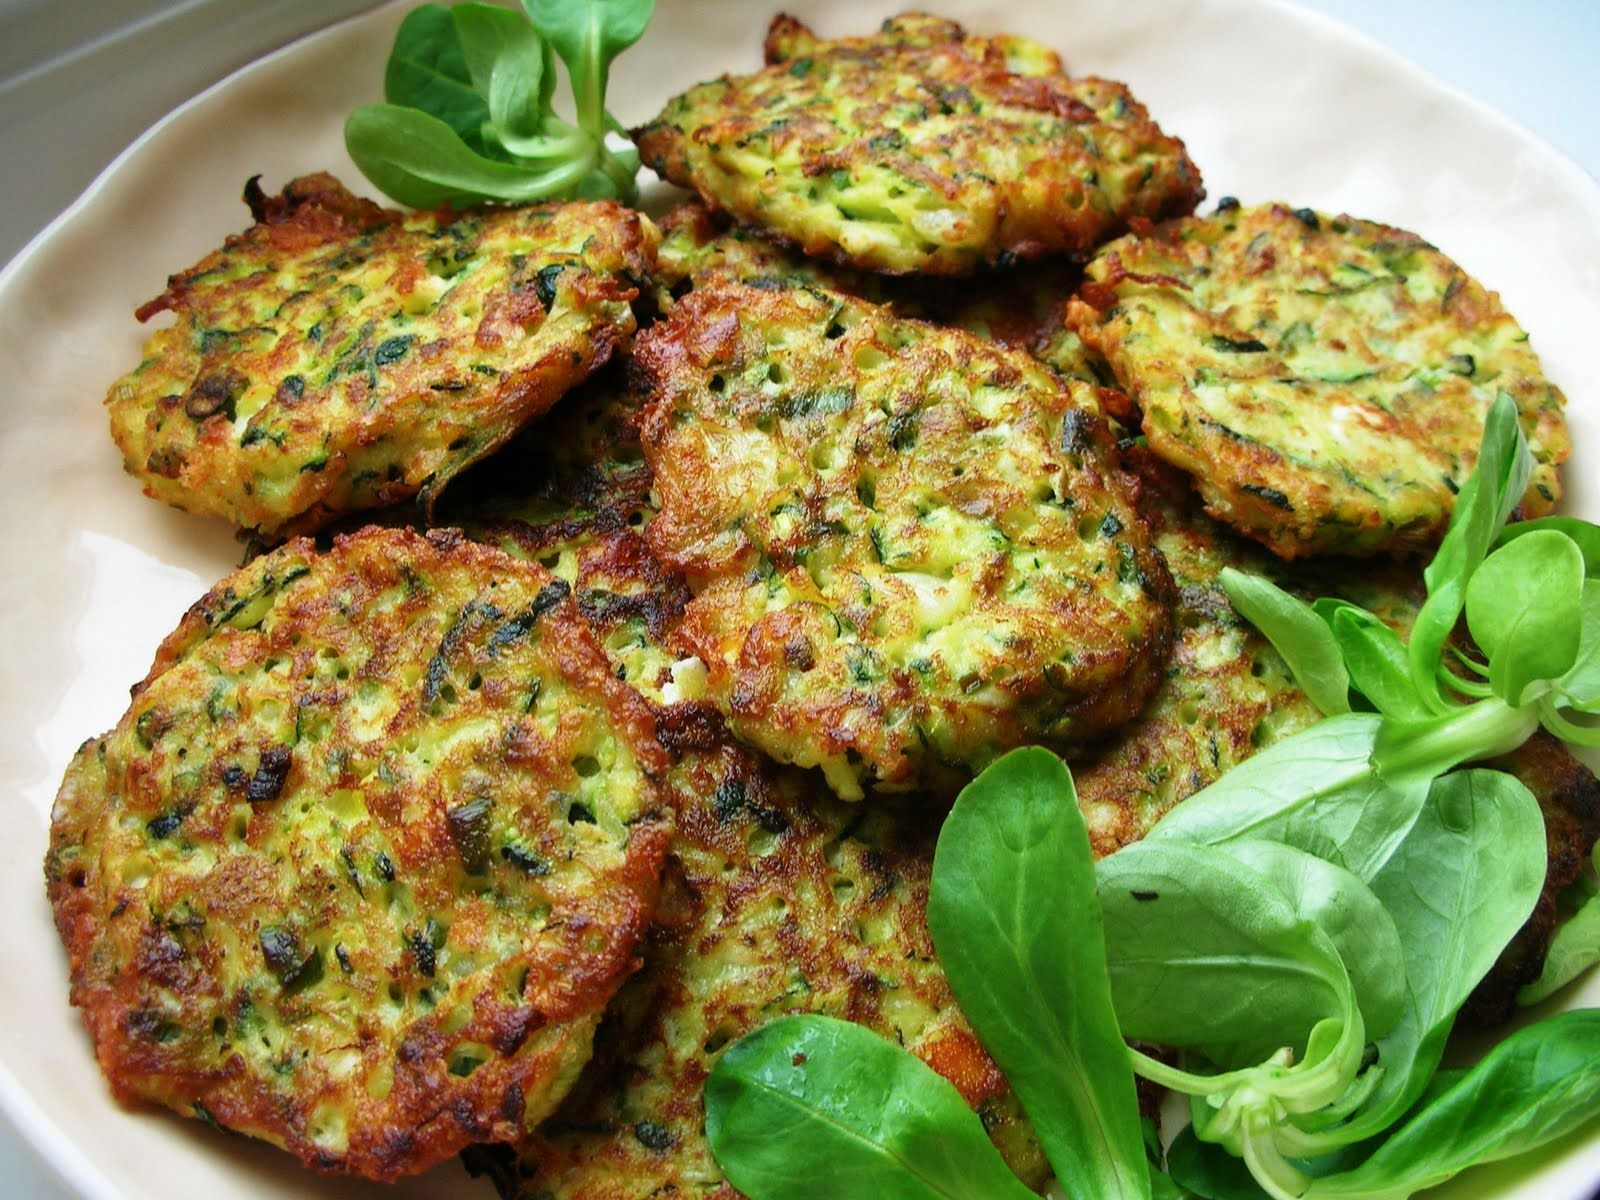 Courgette-Zucchini-and-Feta-Fritters-flavoured-with-Dill-Muc-001